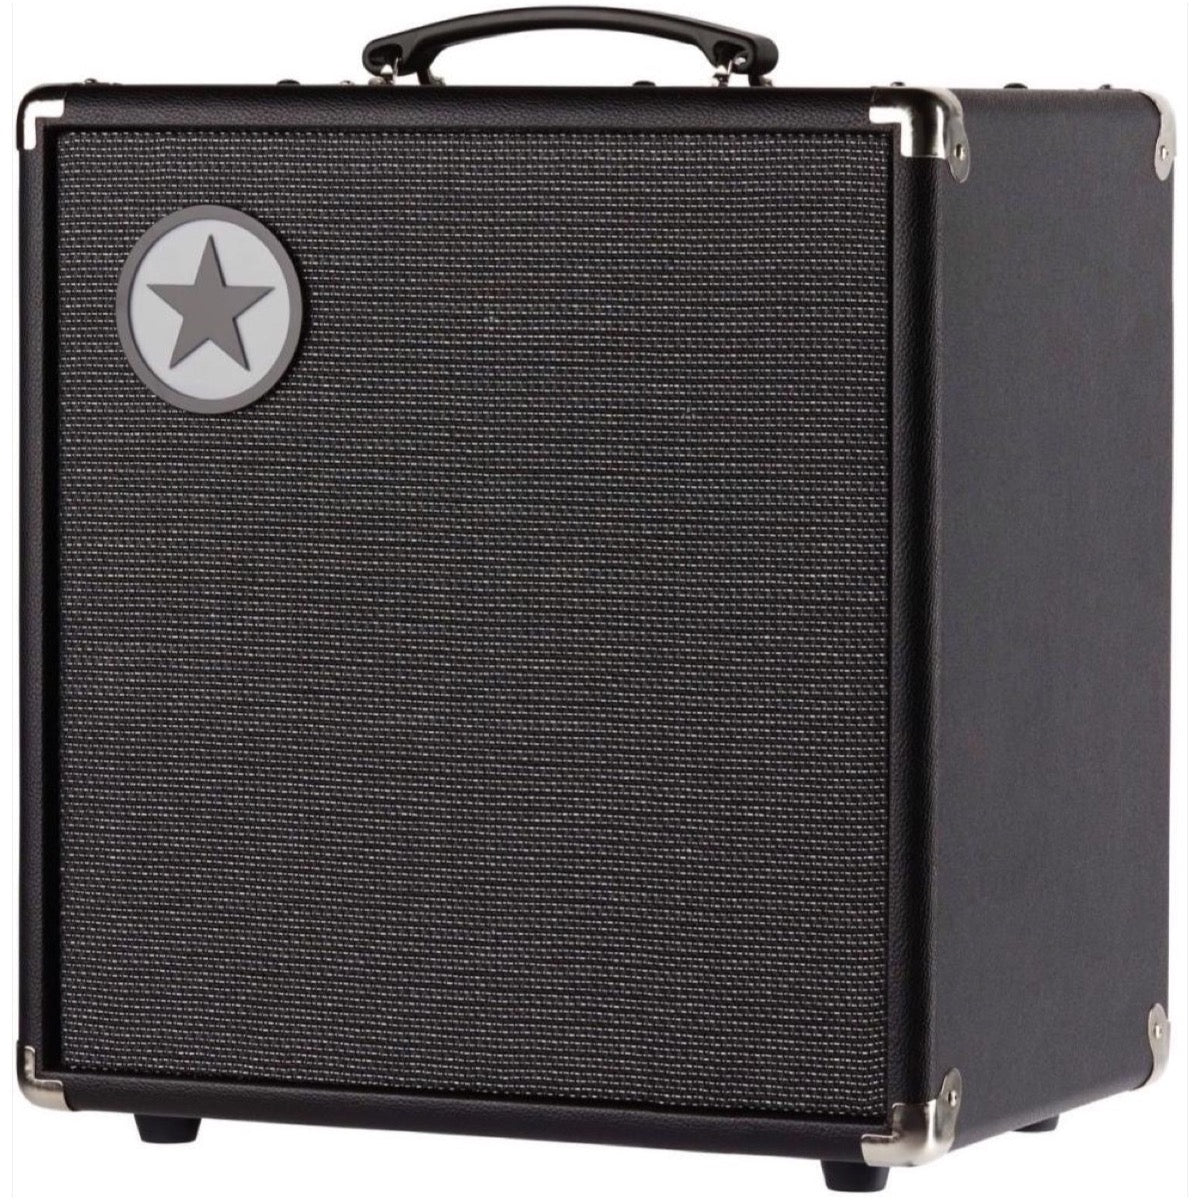 Blackstar Unity 60 Bass Combo Amplifier (60 Watts, 1x10 Inch)